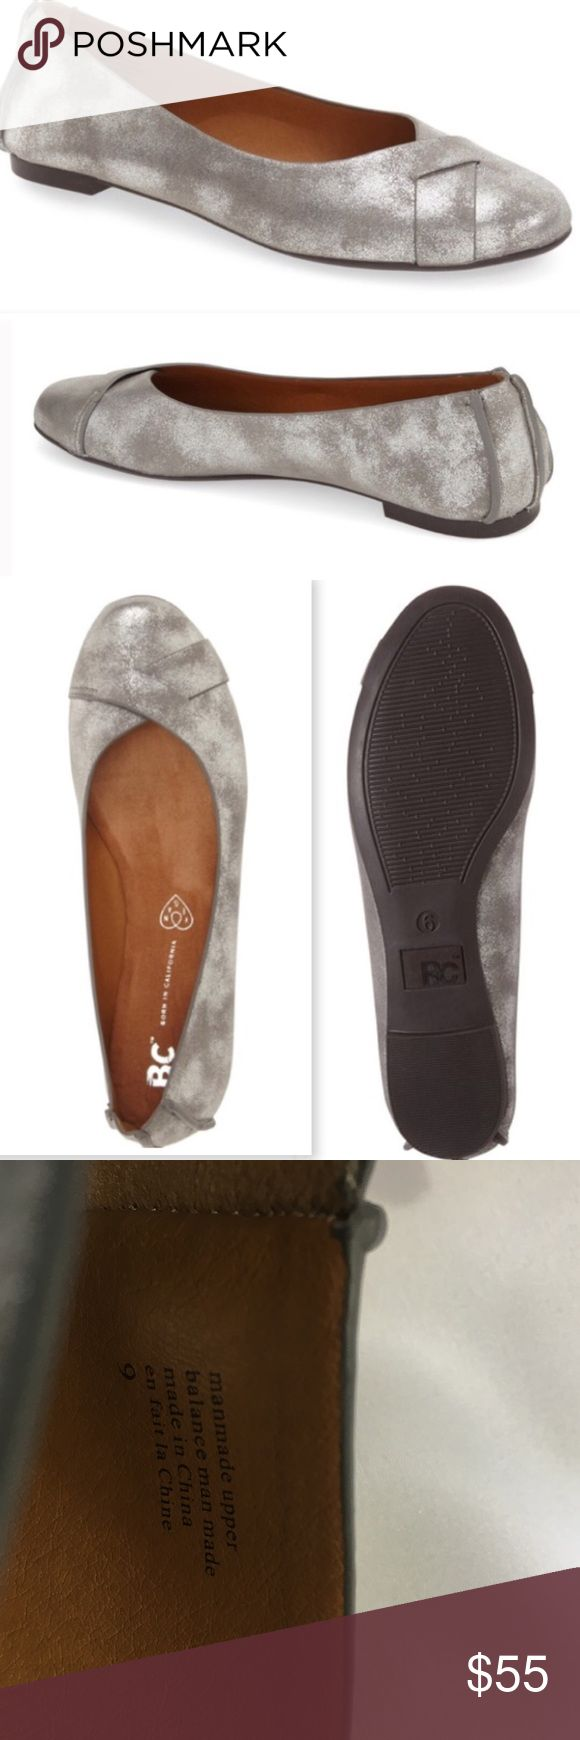 BC Pewter Metallic Ballet Flats BC Pewter Metallic Ballet Flats. Overlapping panels on rounded toe. Metallic glitter dusted finish. Vegan leather (synthetic) sz 9. New in Box bc born in california Shoes Flats & Loafers